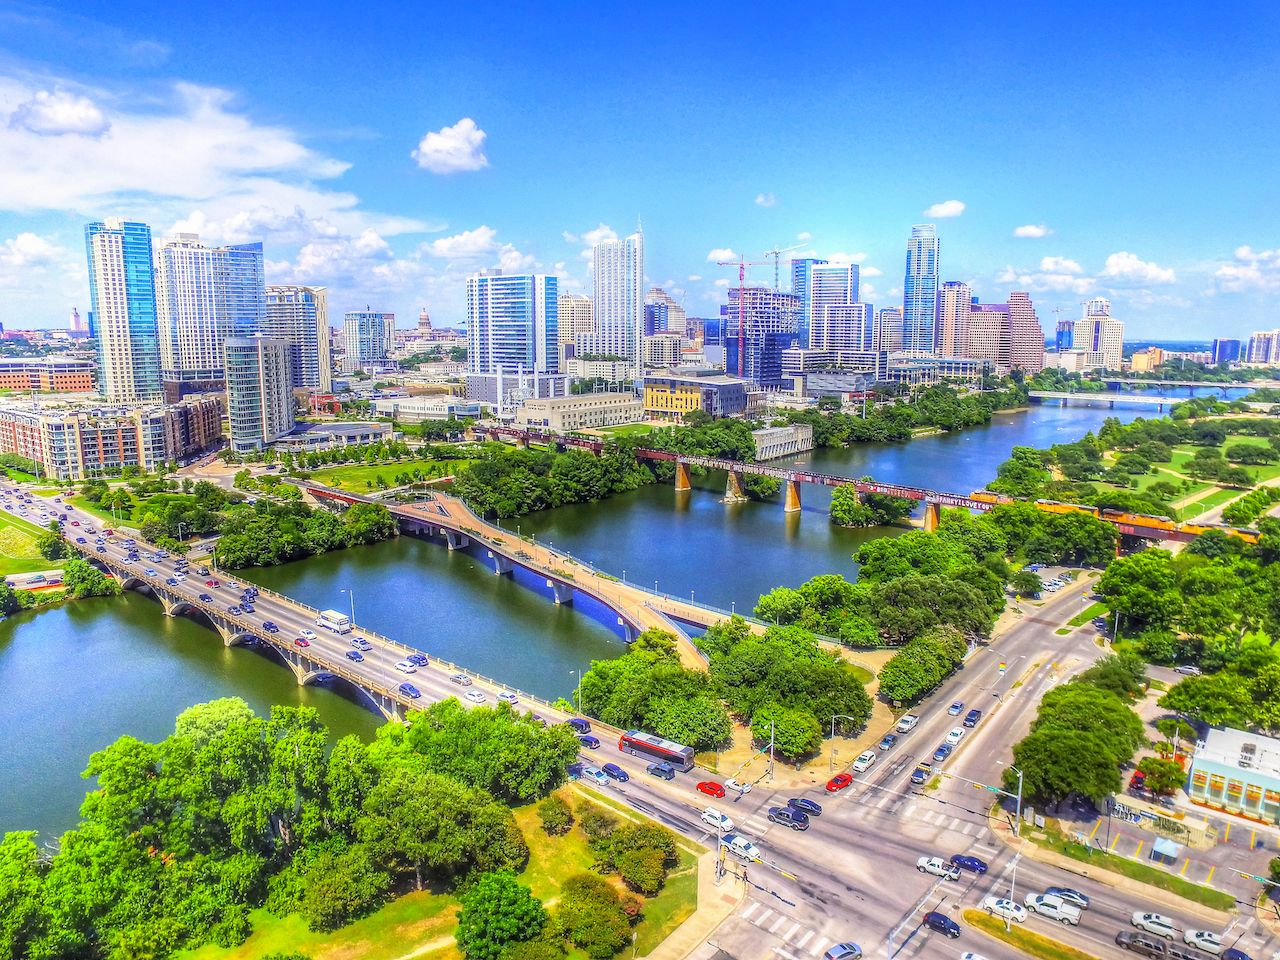 Beautiful aerial view of the Austin cityscape